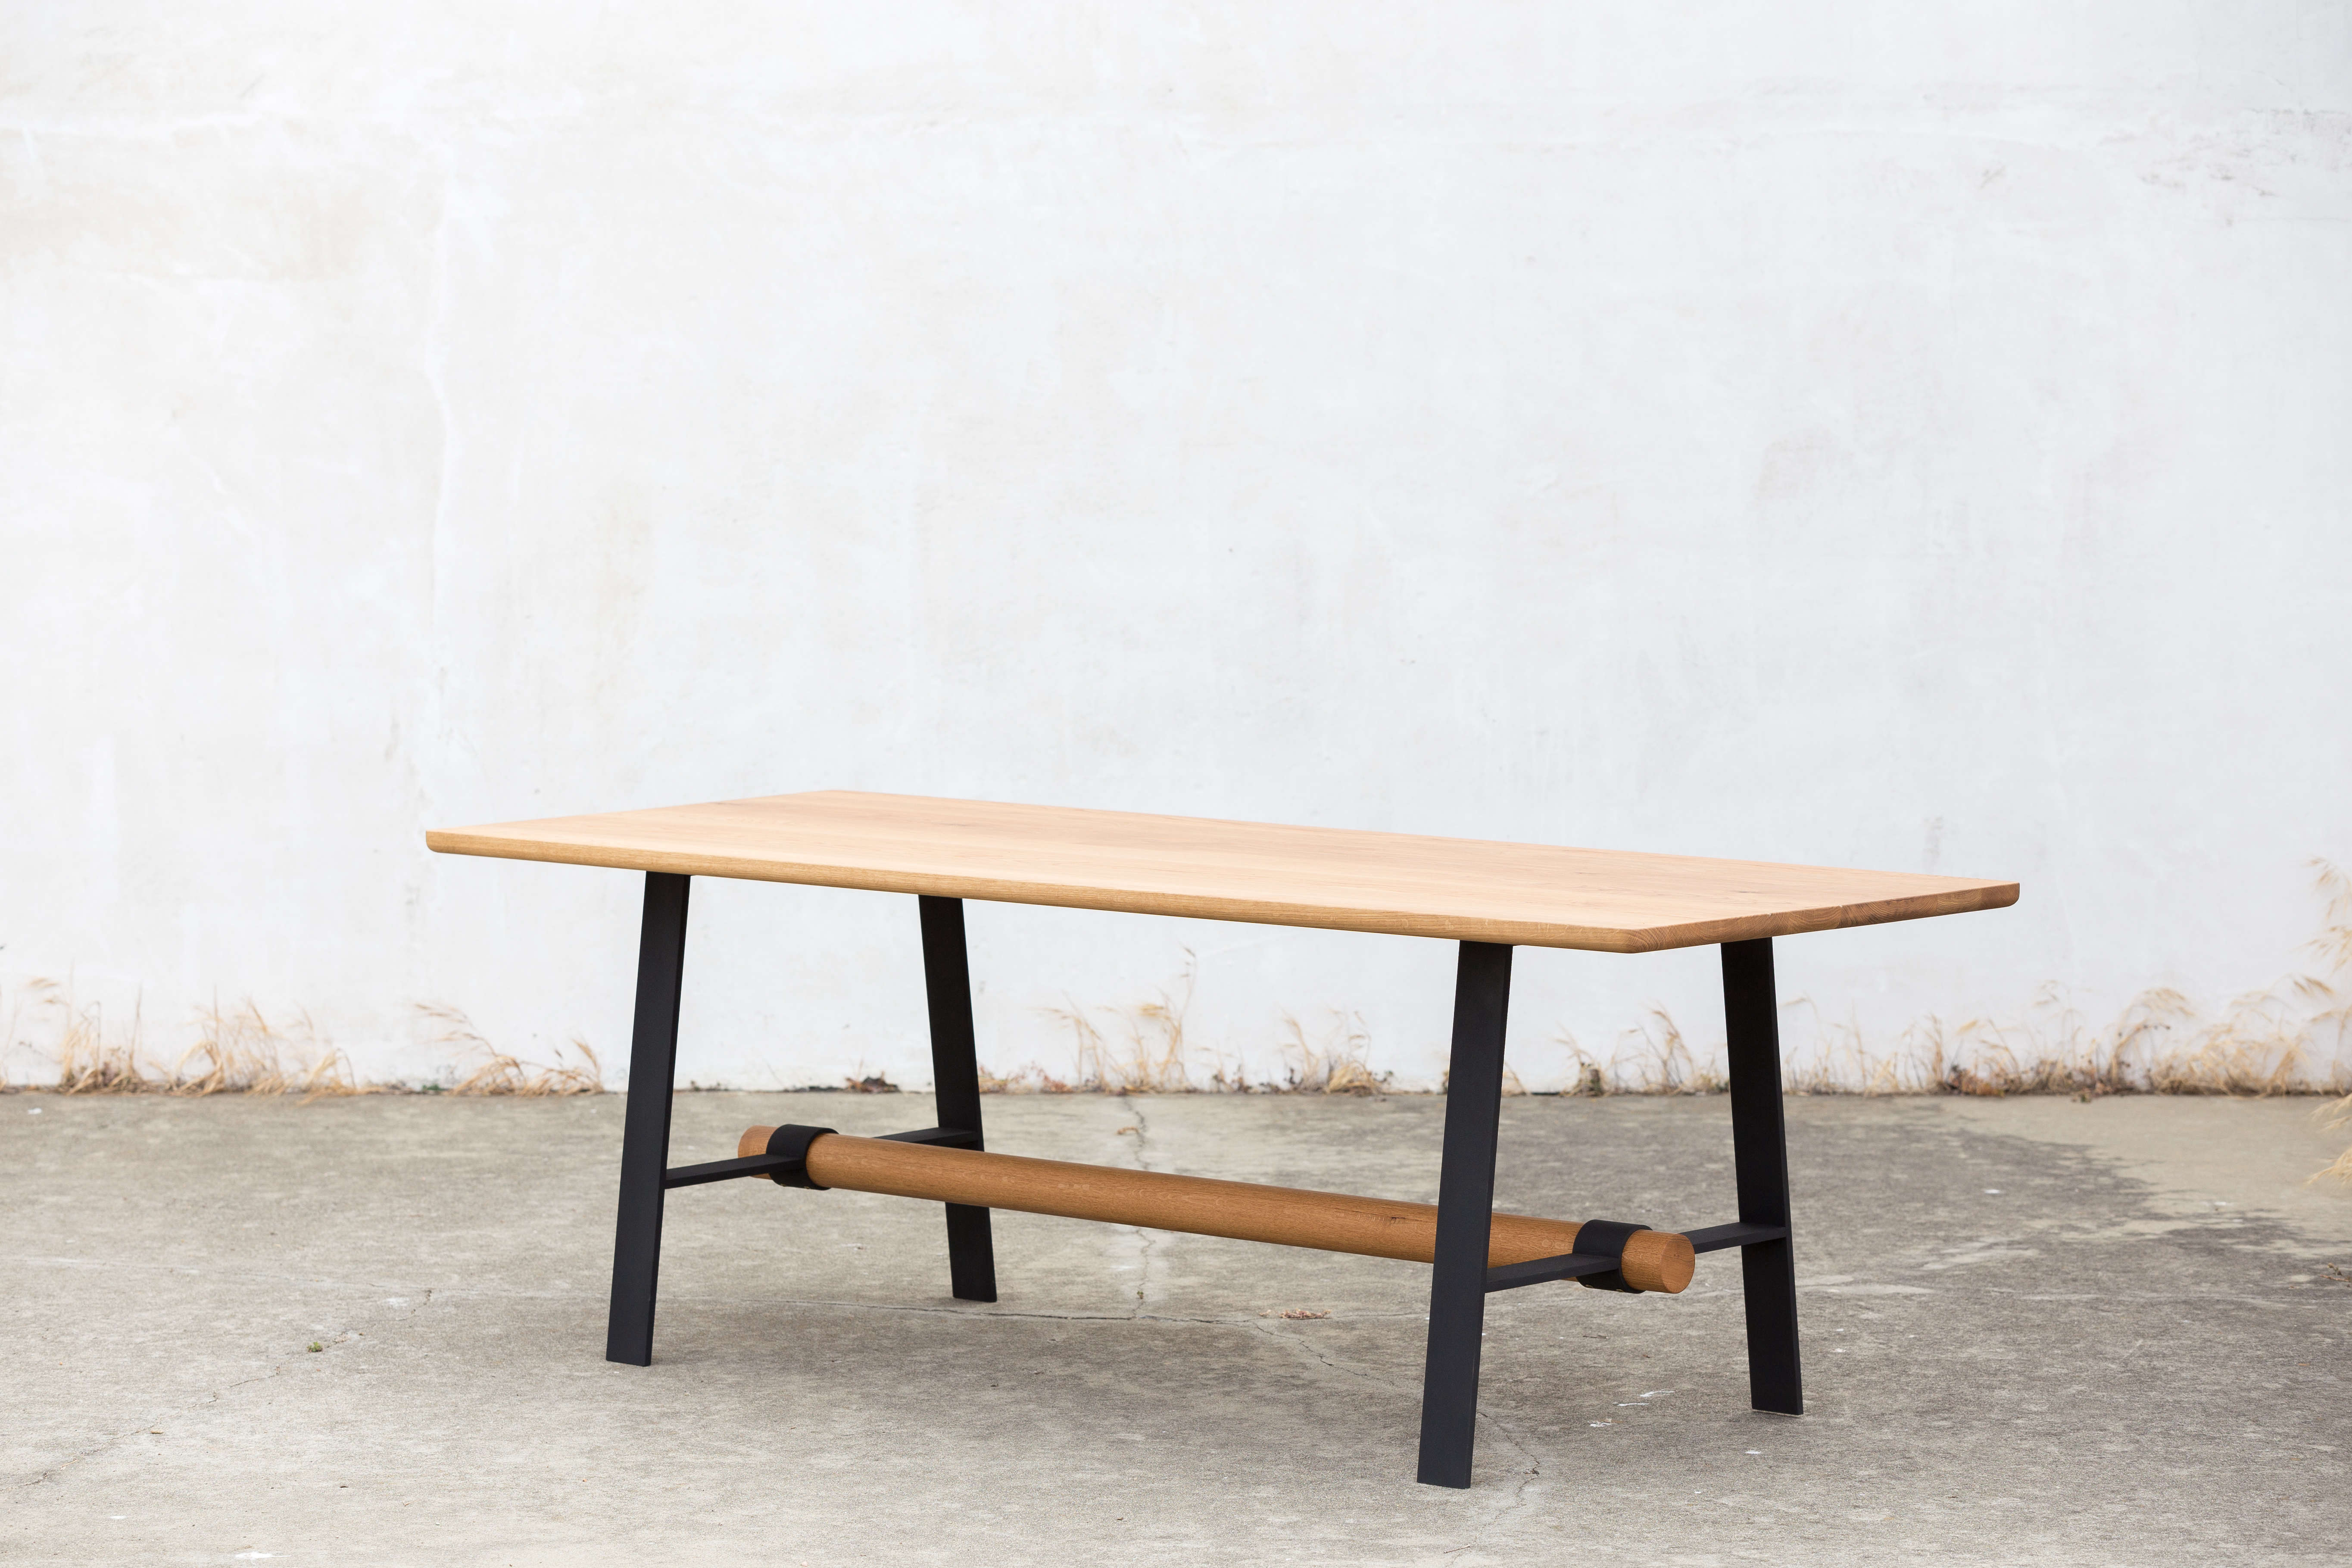 The Dowel Dining Table, shown in natural white oak and black steel legs, features a long dowel trestle that inspires the rest of Four/Quarter's work. Contact Four/Quarter for pricing and information.